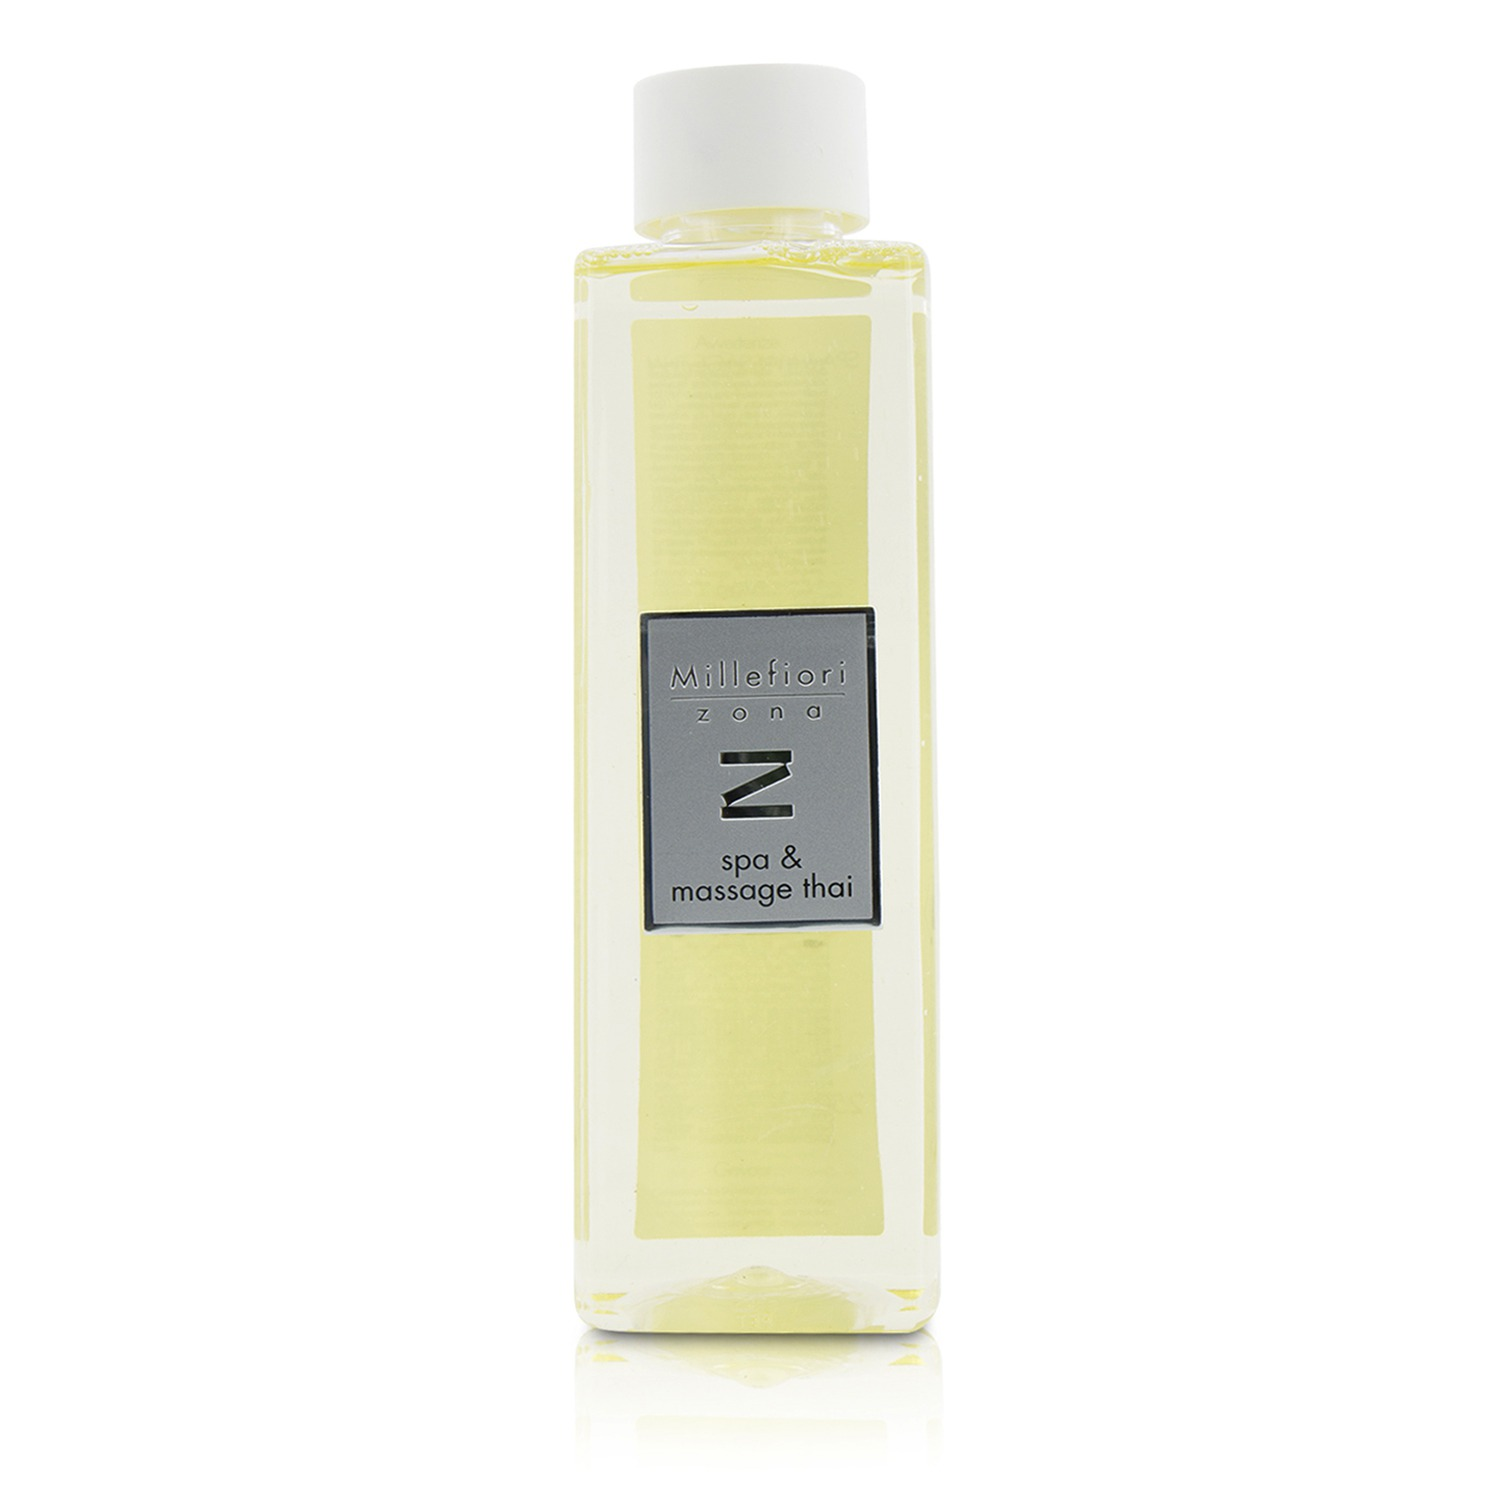 Millefiori Zona Fragrance Diffuser Refill Spa & Massage Thai/8 45oz